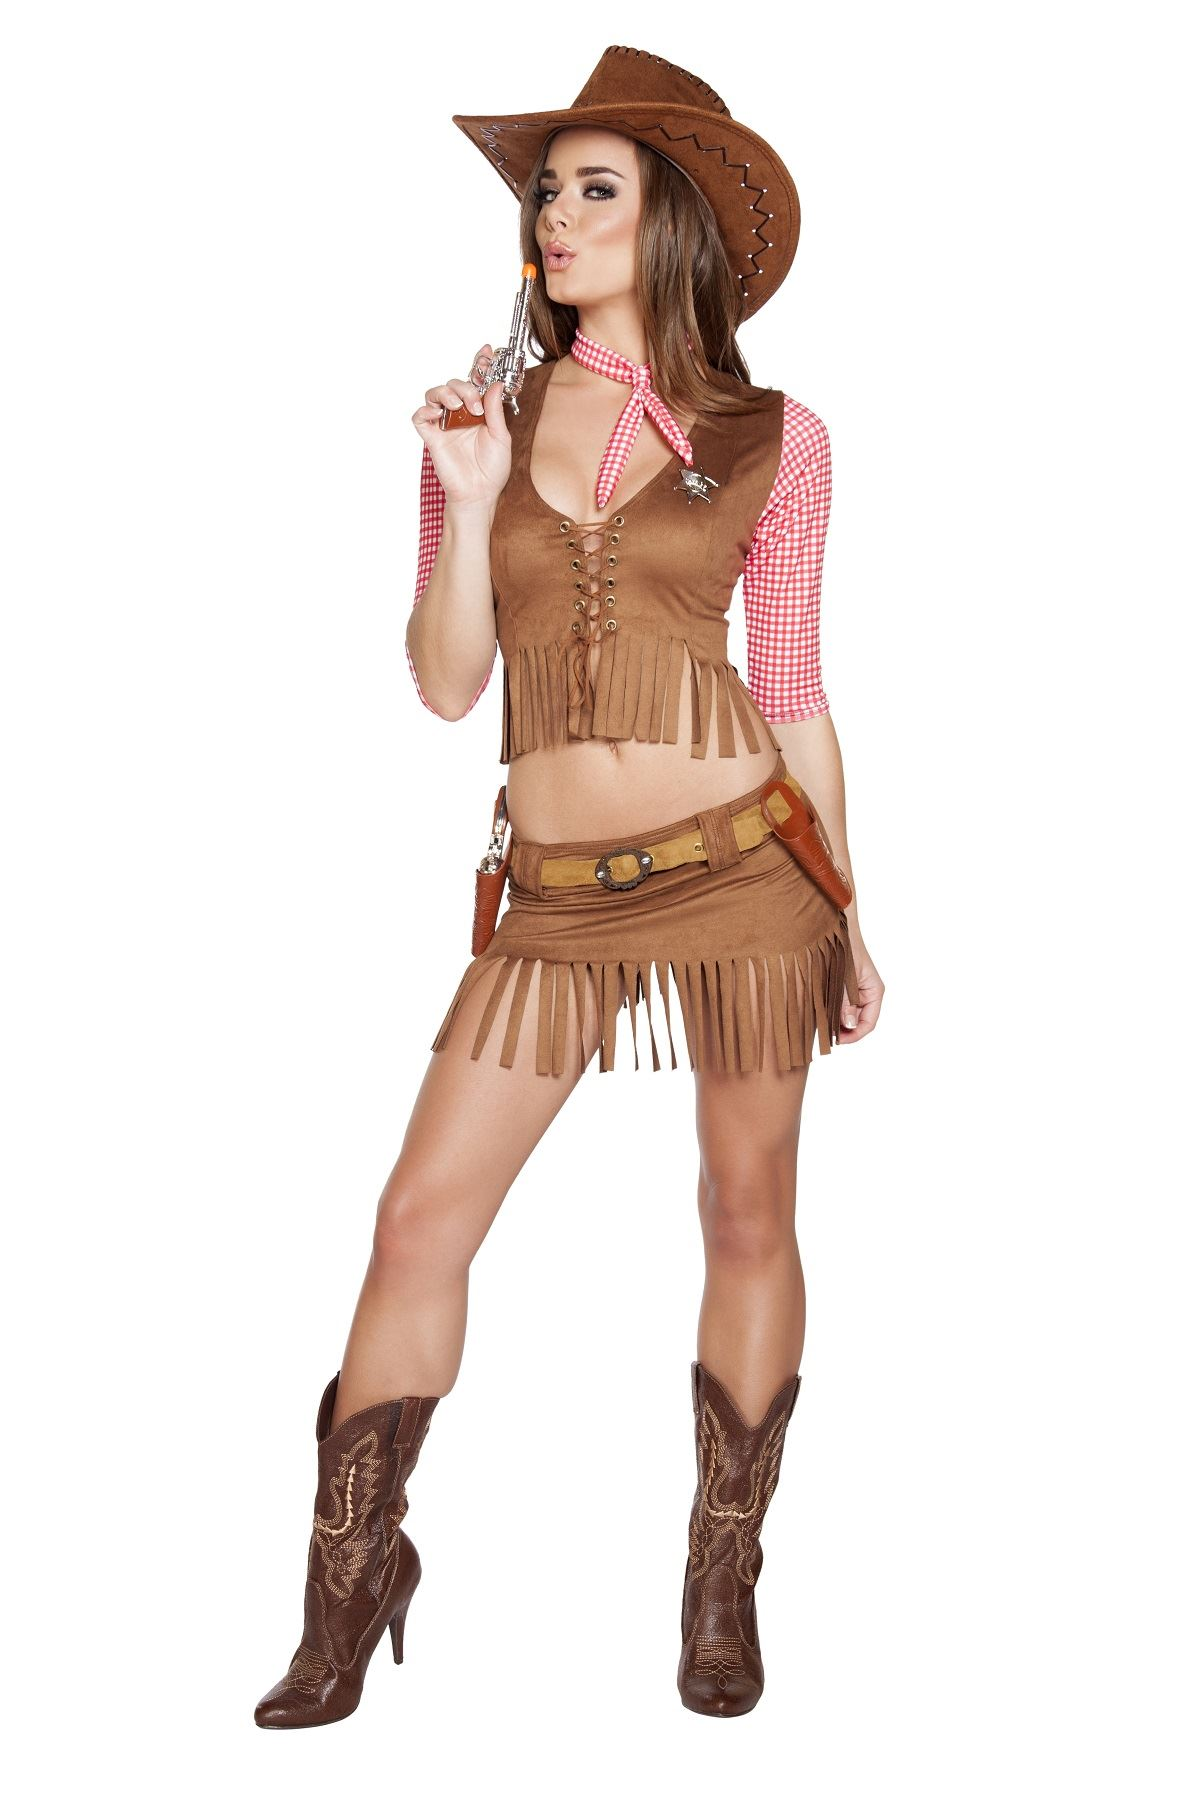 Adult Cowboy Western Country Cutie Woman Costume ...  sc 1 st  The Costume Land & Adult Cowboy Western Country Cutie Woman Costume | $65.99 | The ...